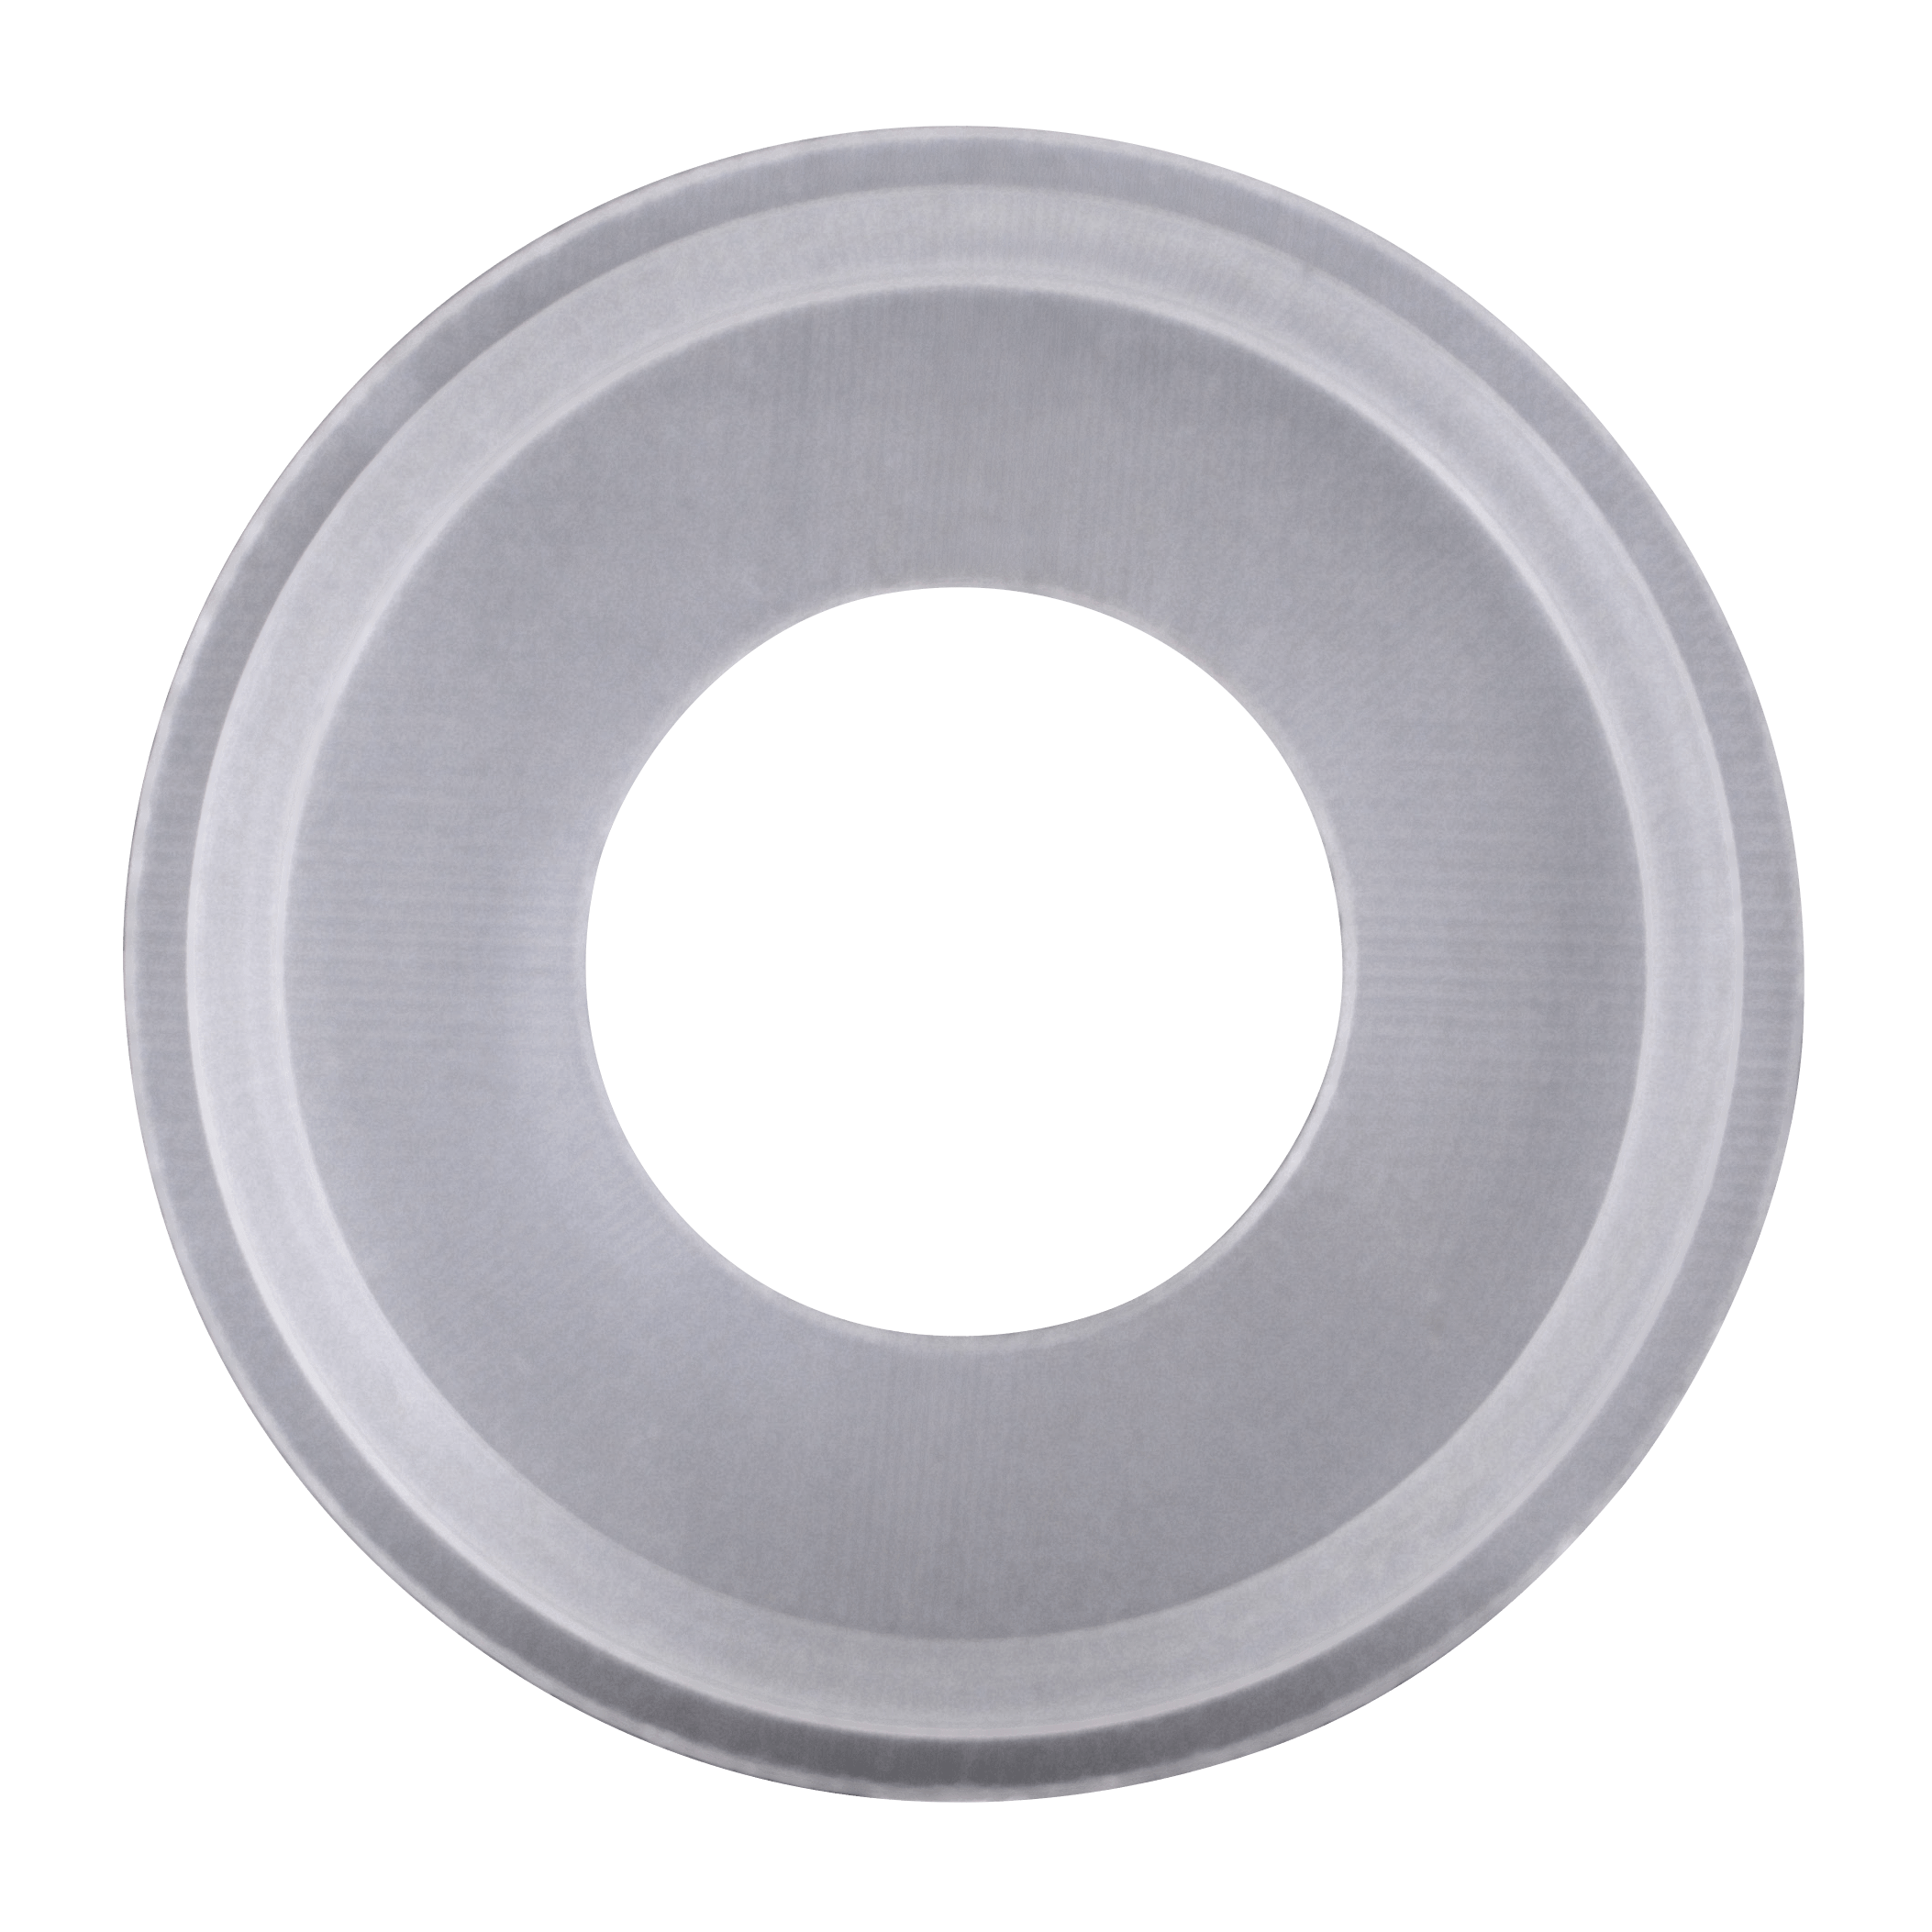 40RX-PX Gasket Clamp Type FDA Compliant Silicone